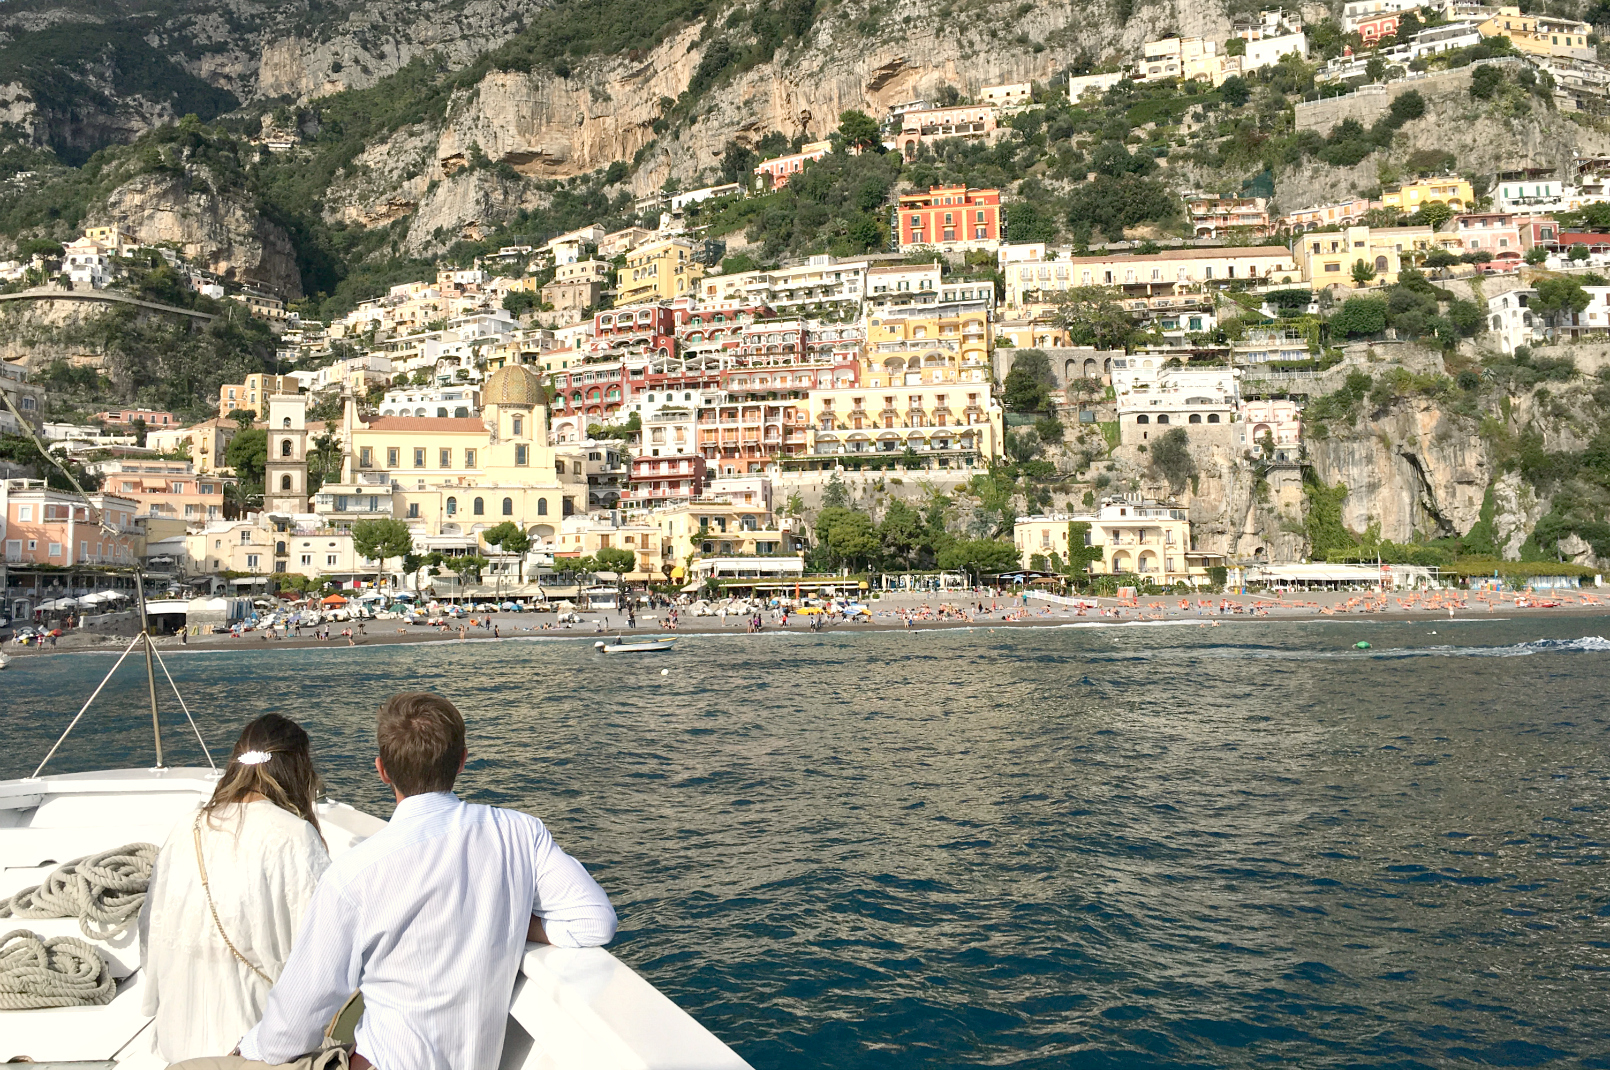 Romantic Spots in Positano